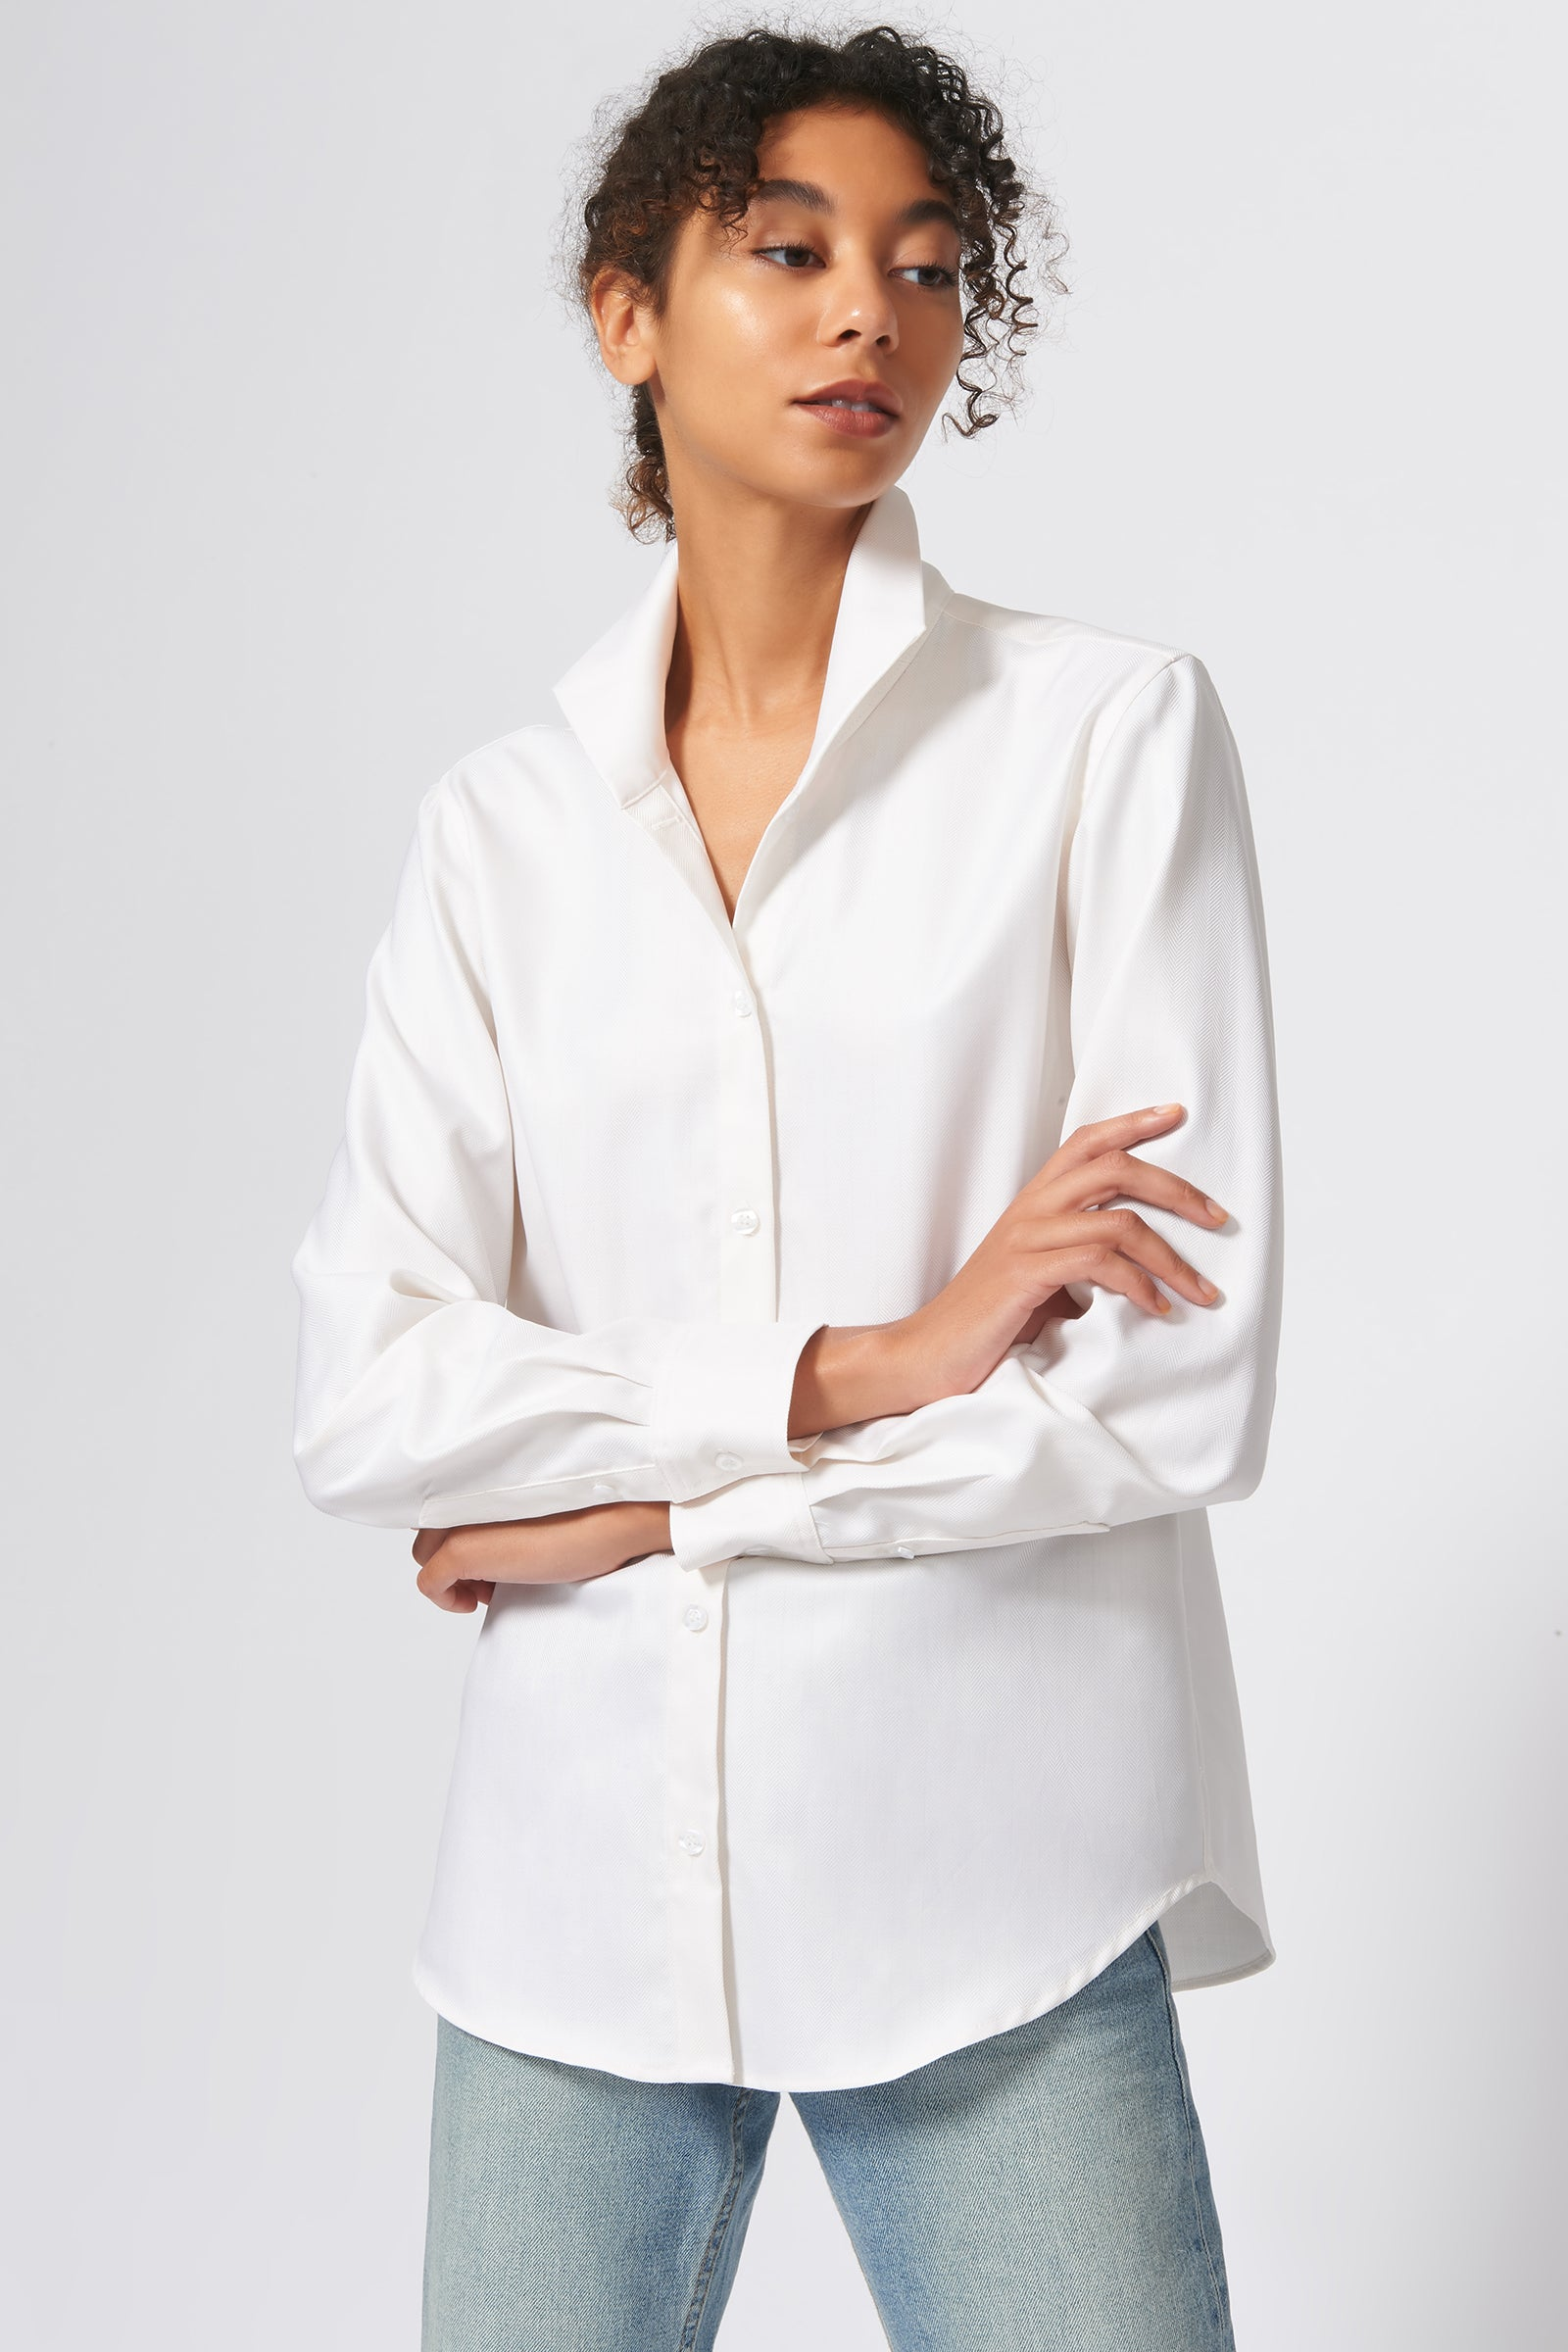 Kal Rieman Ginna Box Pleat Shirt in Ivory Fine Herringbone on Model Front View